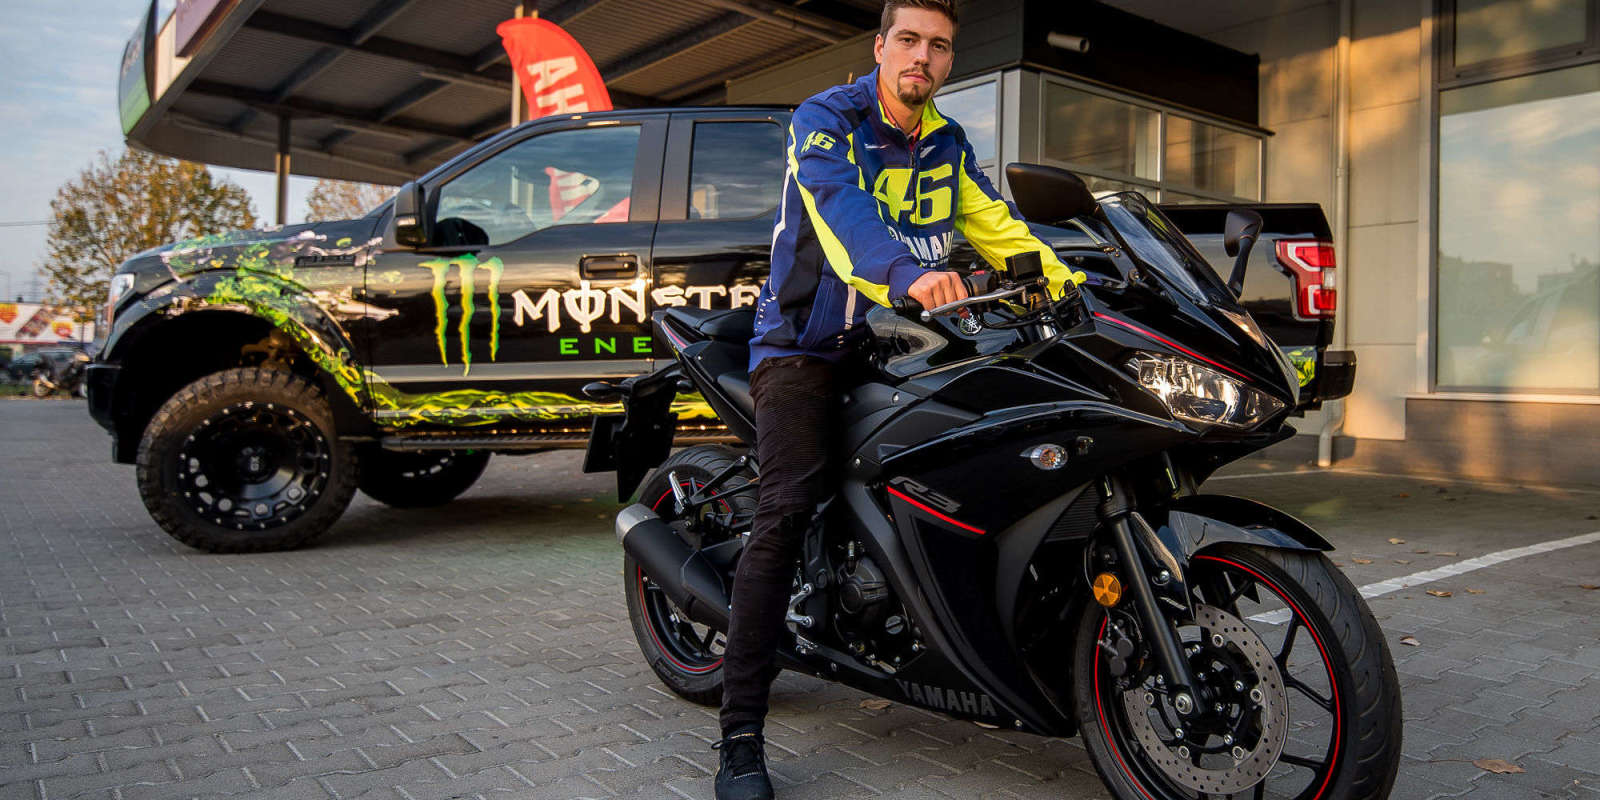 Pictures for the 2019 Yamaha Roadshow in Hungary